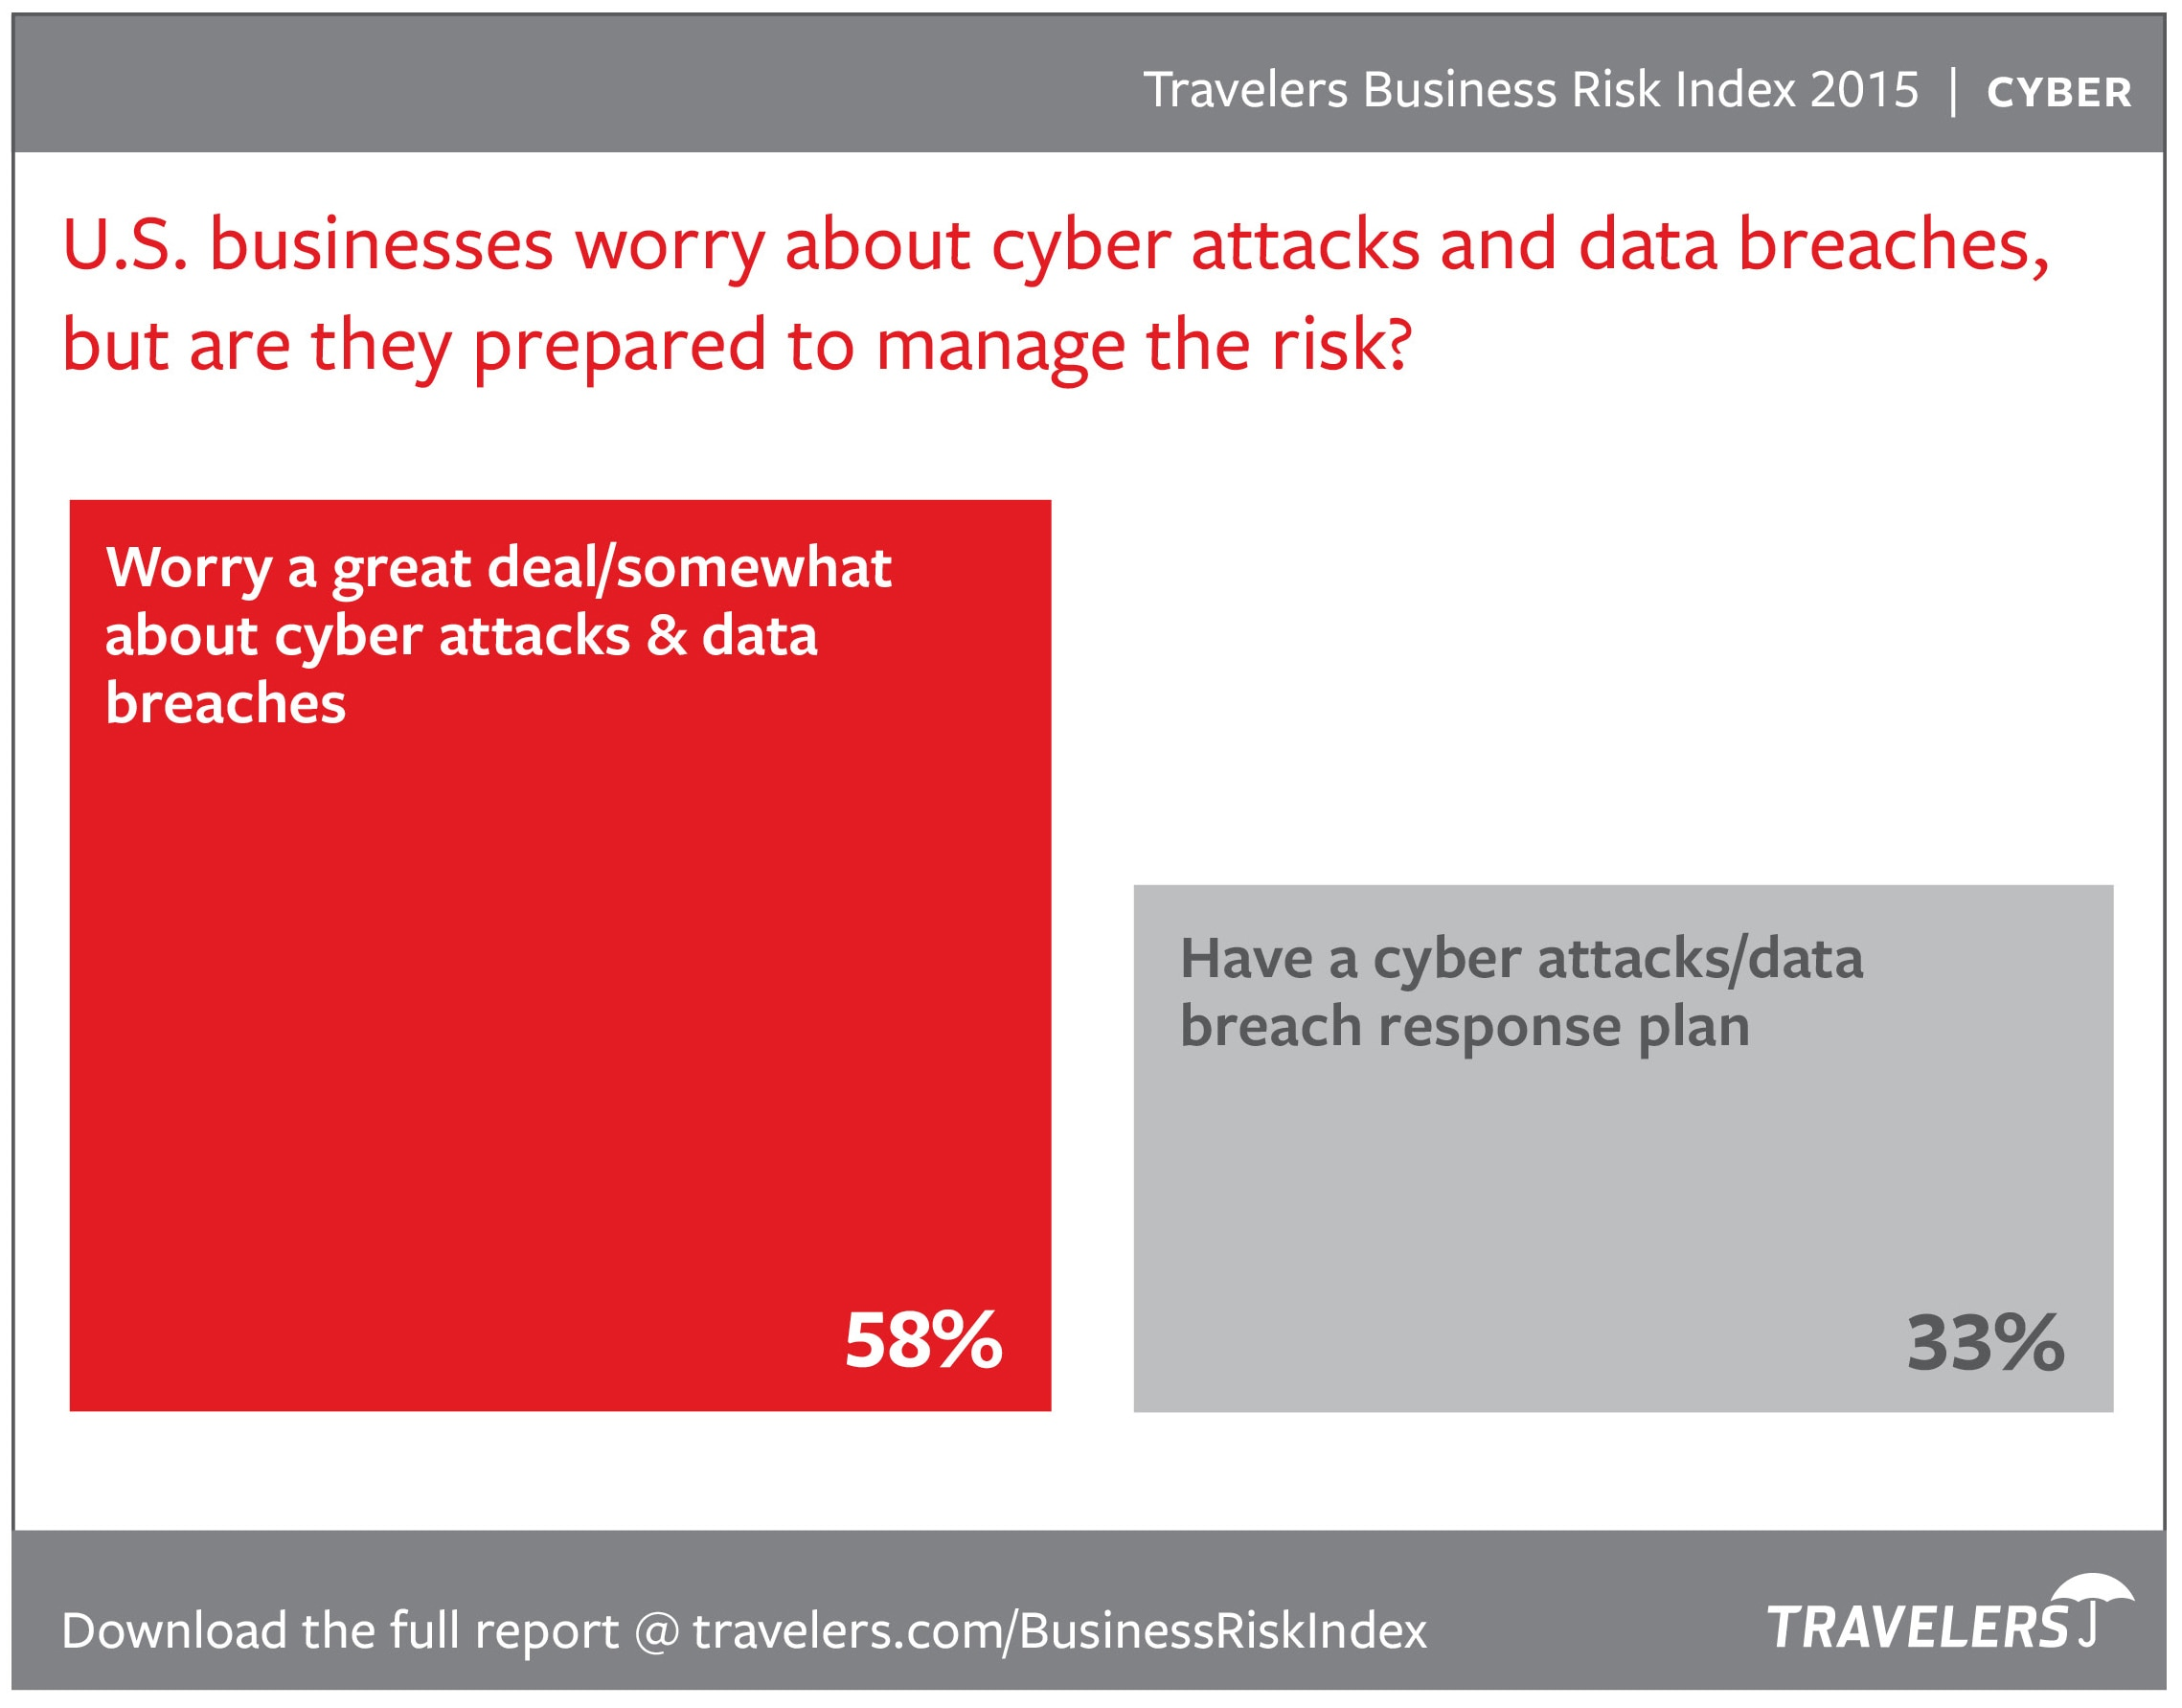 Cyber comparison chart from 2015 Business Risk Index